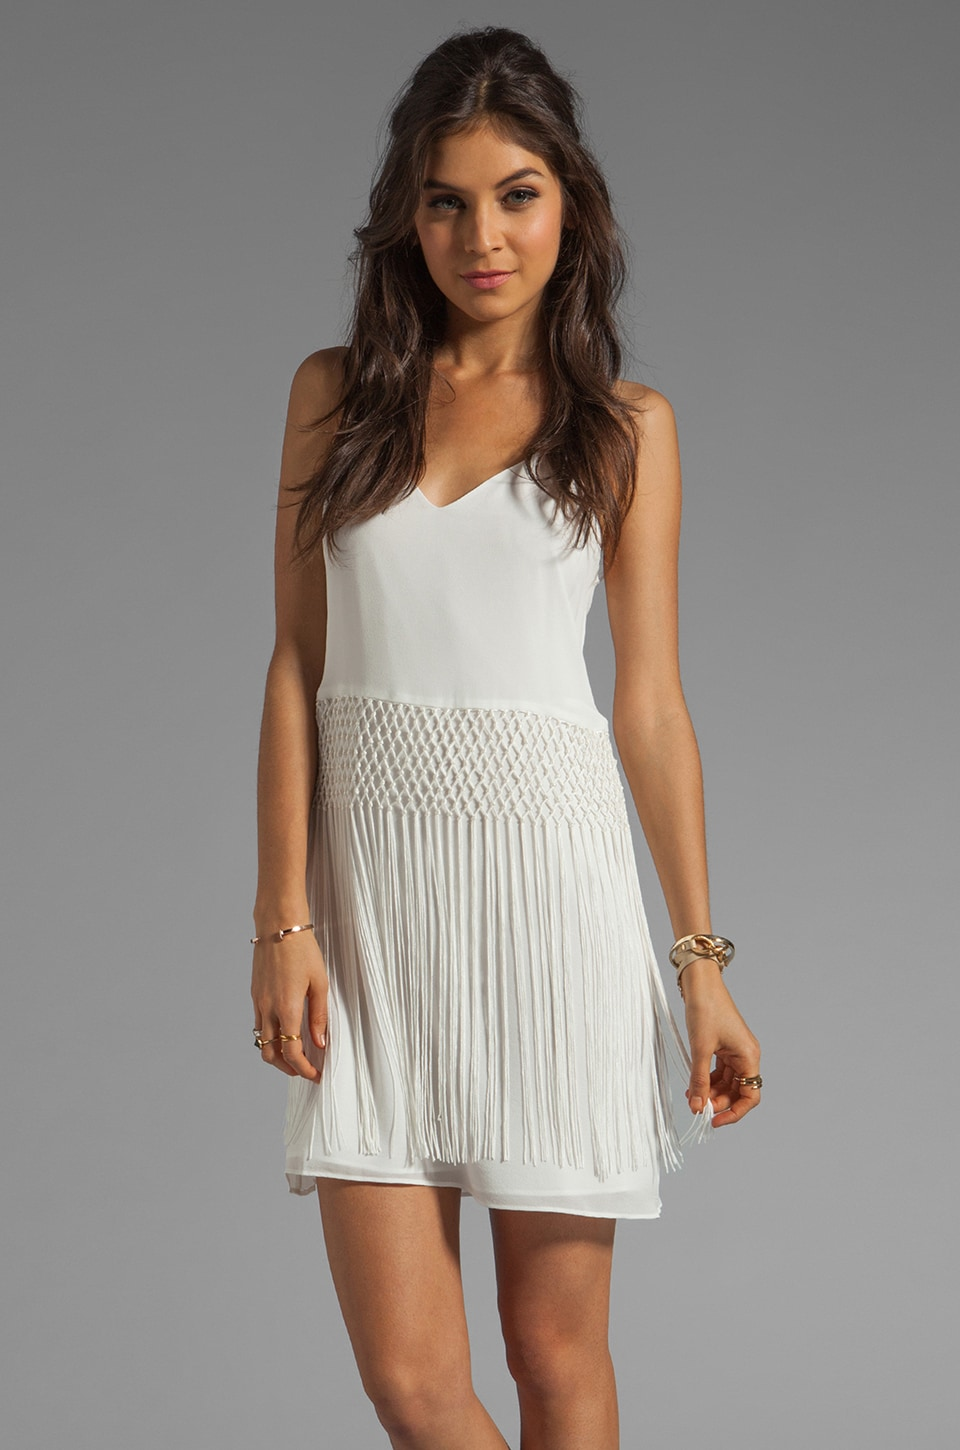 Dolce Vita Kimi Fringe Dress in White